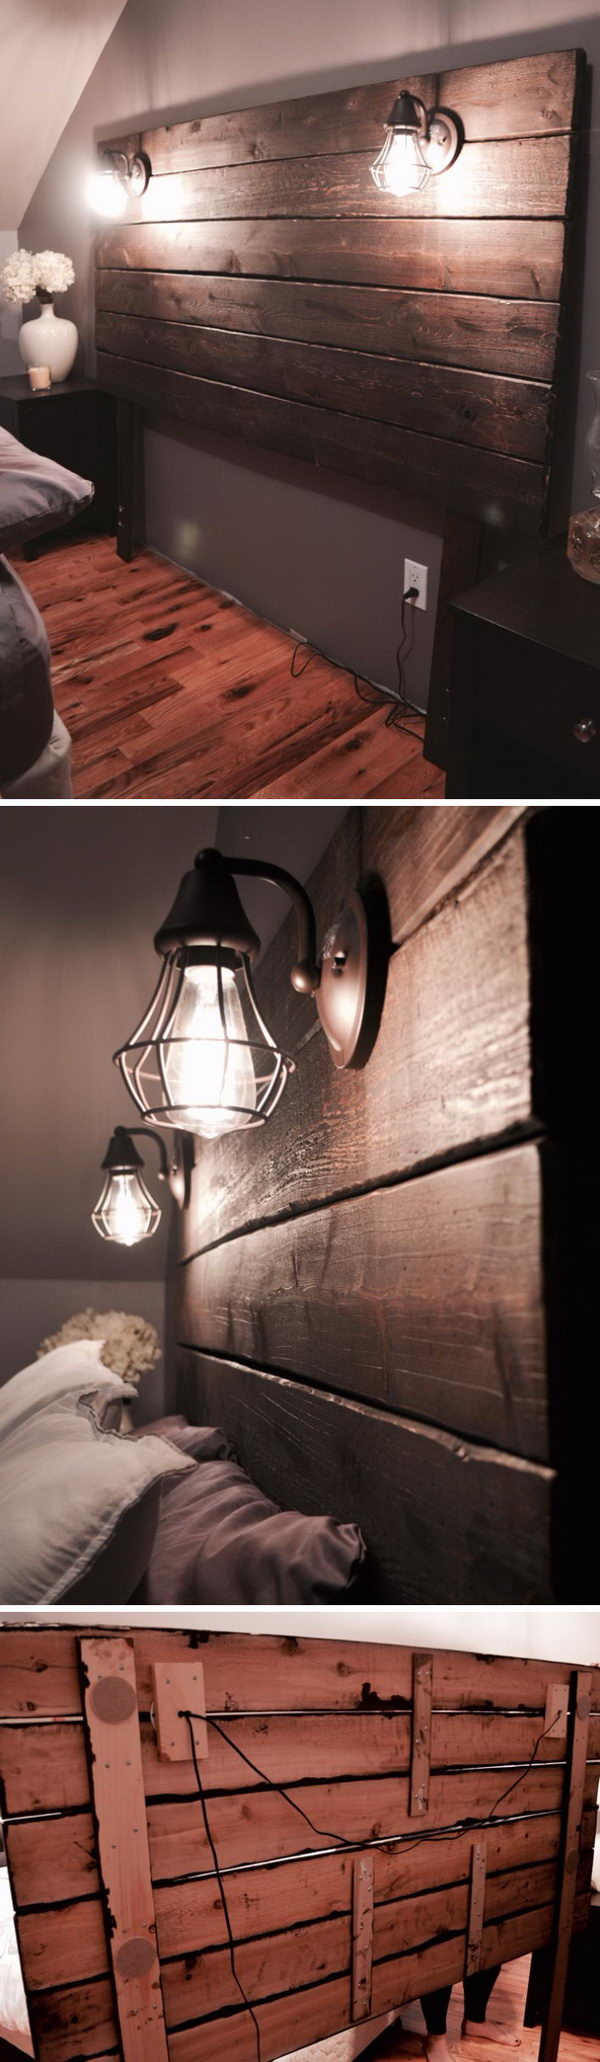 Rustic Wooden Headboard With Lights.